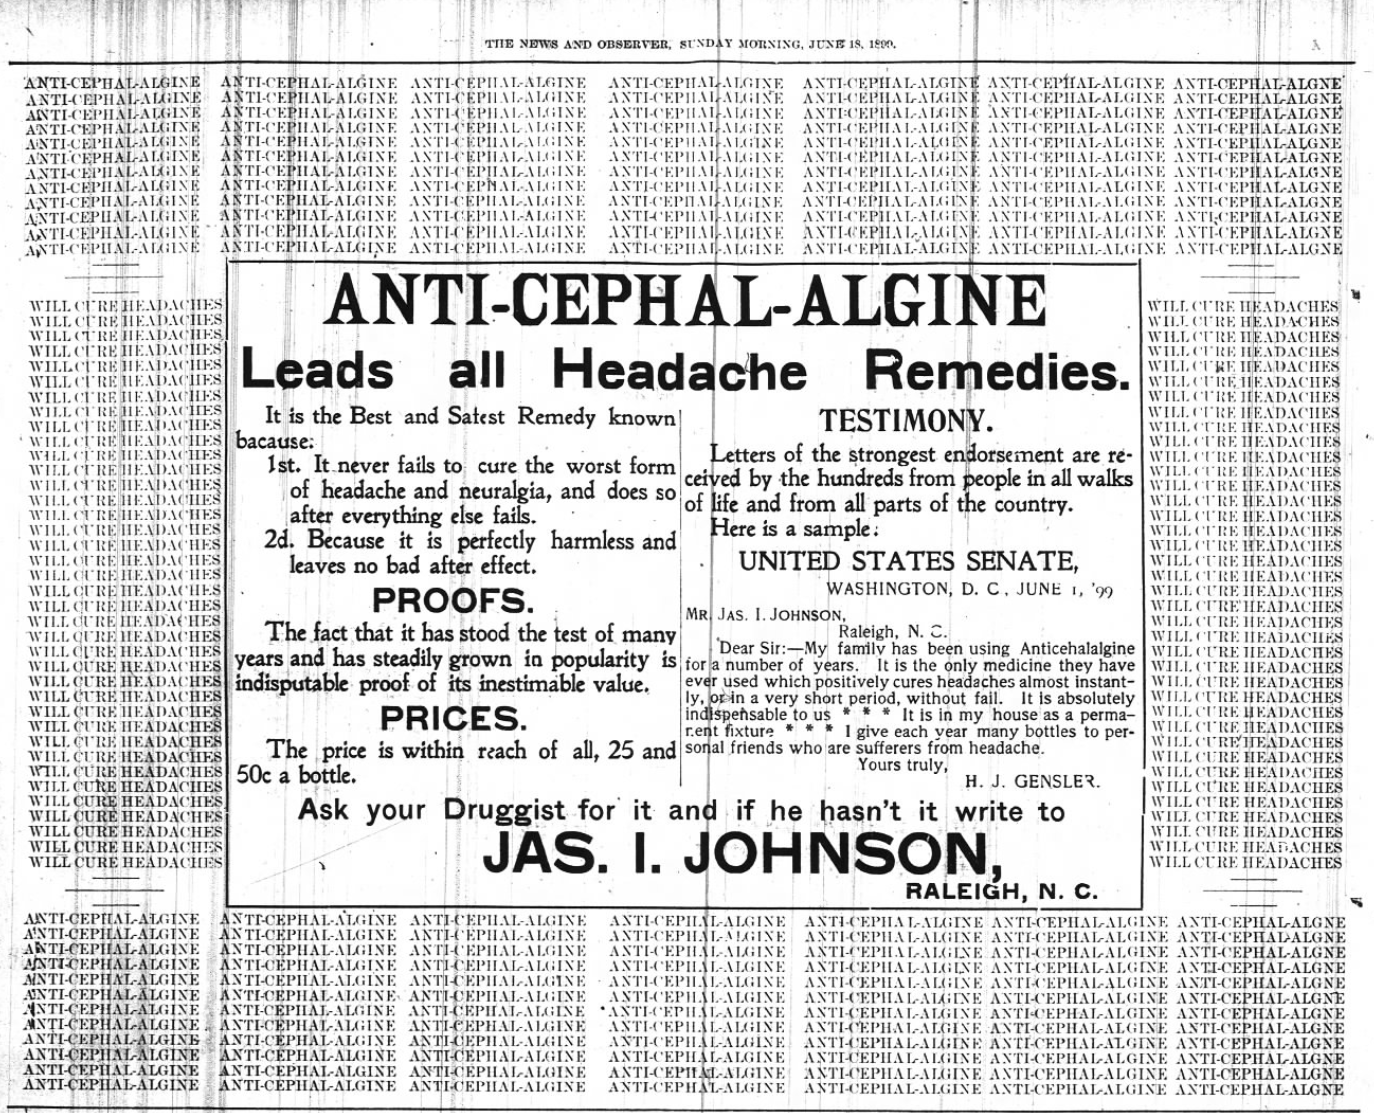 Kristin Holt | Victorian-American Headaches: Part 4. Anti-Cephal-Algine. Leads all Headache Remedies. A newspaper full-half-page advertisement in News and Observer of Raleigh, North Carolina on June 18, 1899.